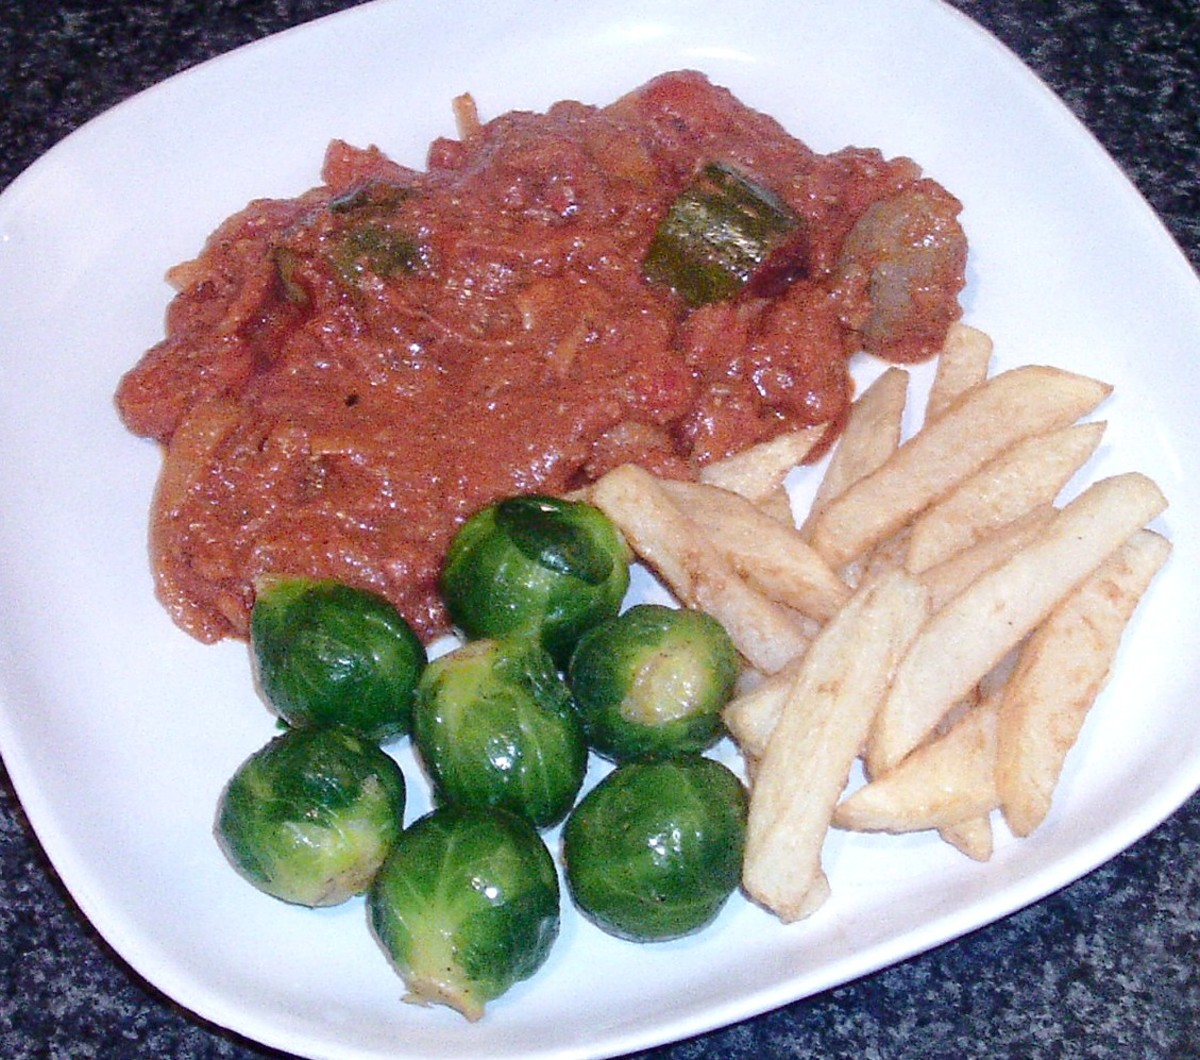 Venison sausages, lambs liver and Mediterranean vegetables stew is served with Brussels sprouts and chips